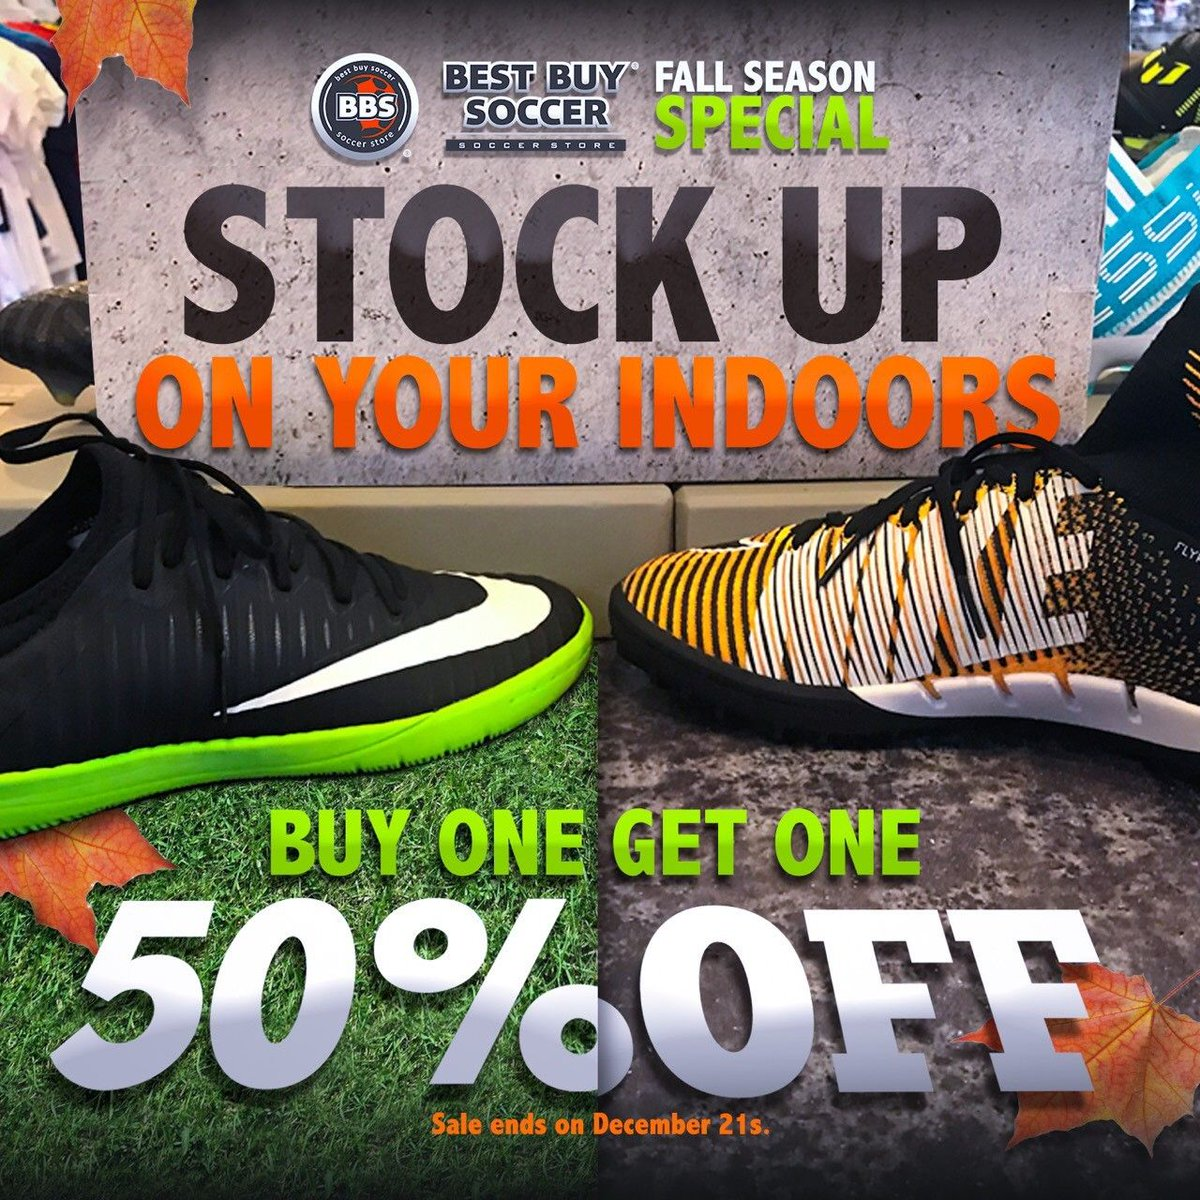 Best Deal this Fall! #bestbuysoccer #mls #adidas #nike https://t.co/VVlo00IQep